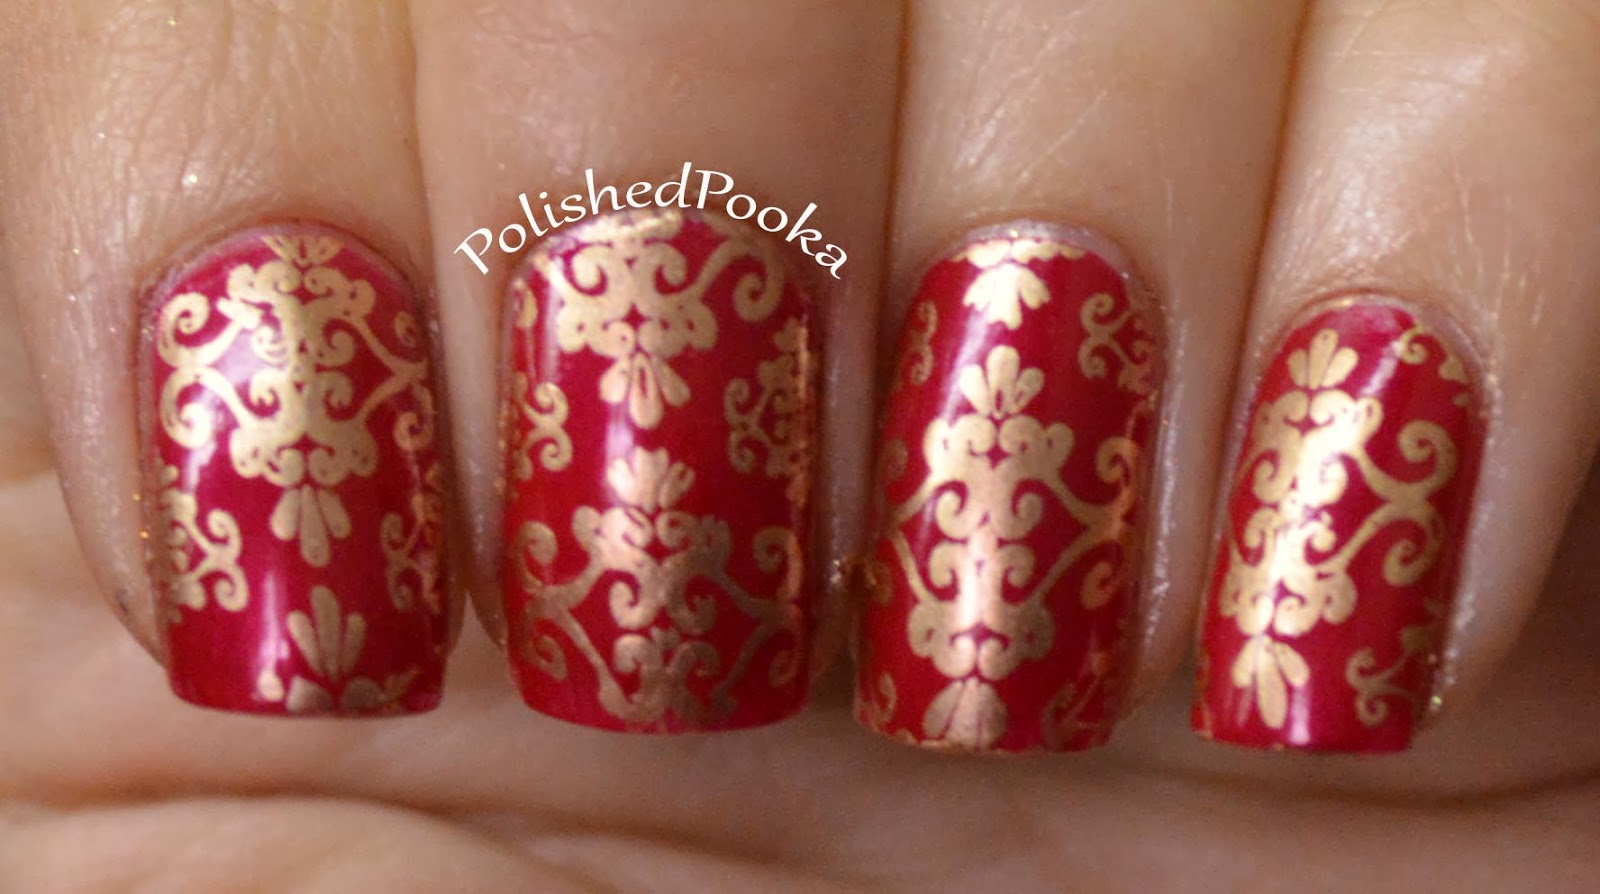 Polished pooka christmas ornament nails and giveaway day 2 d ok here is the ornament nail art i did with it does it look like a fancy christmas ball prinsesfo Gallery